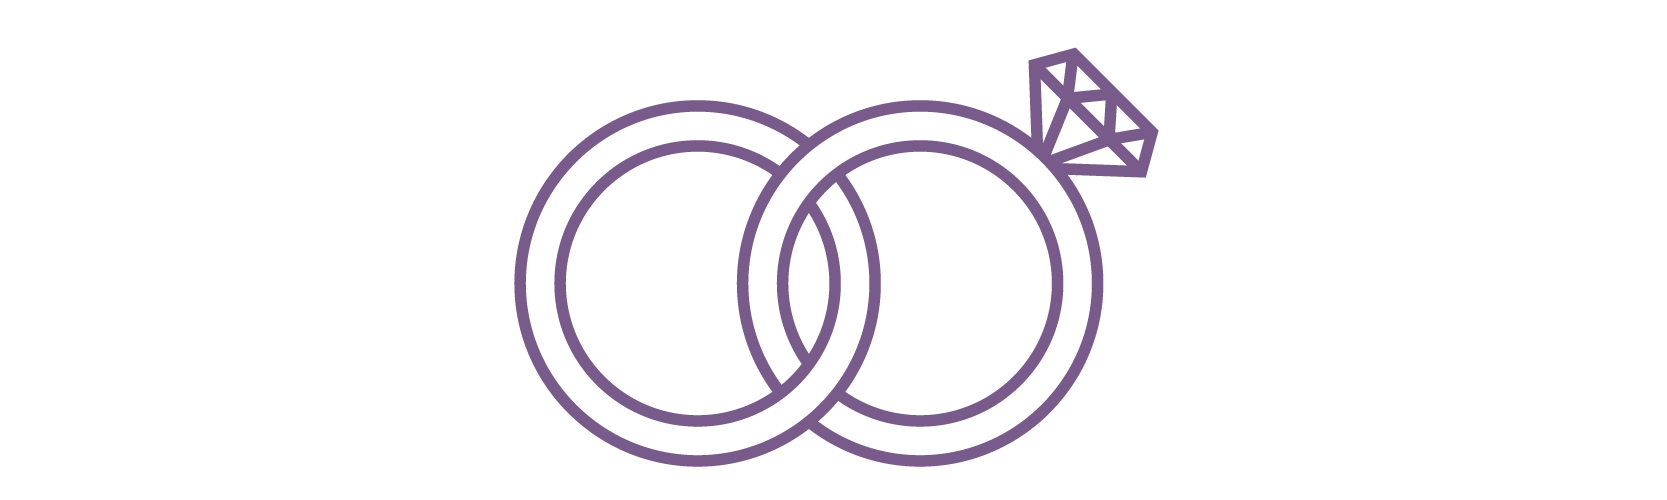 WeddingIcons-18.png